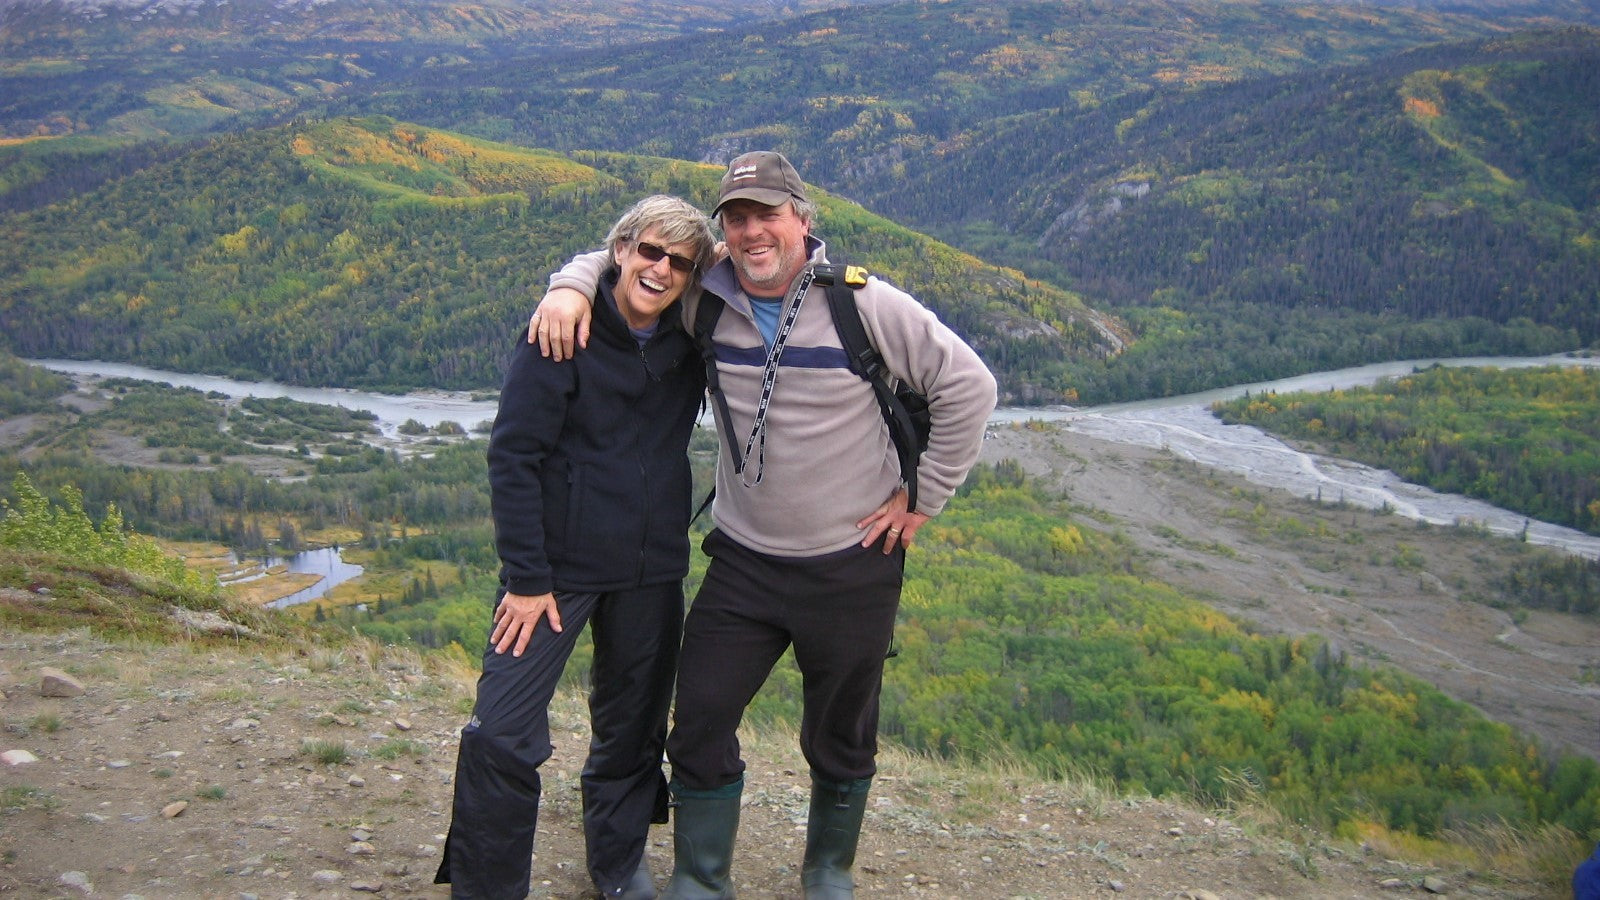 mother and son smiling atop a mountain